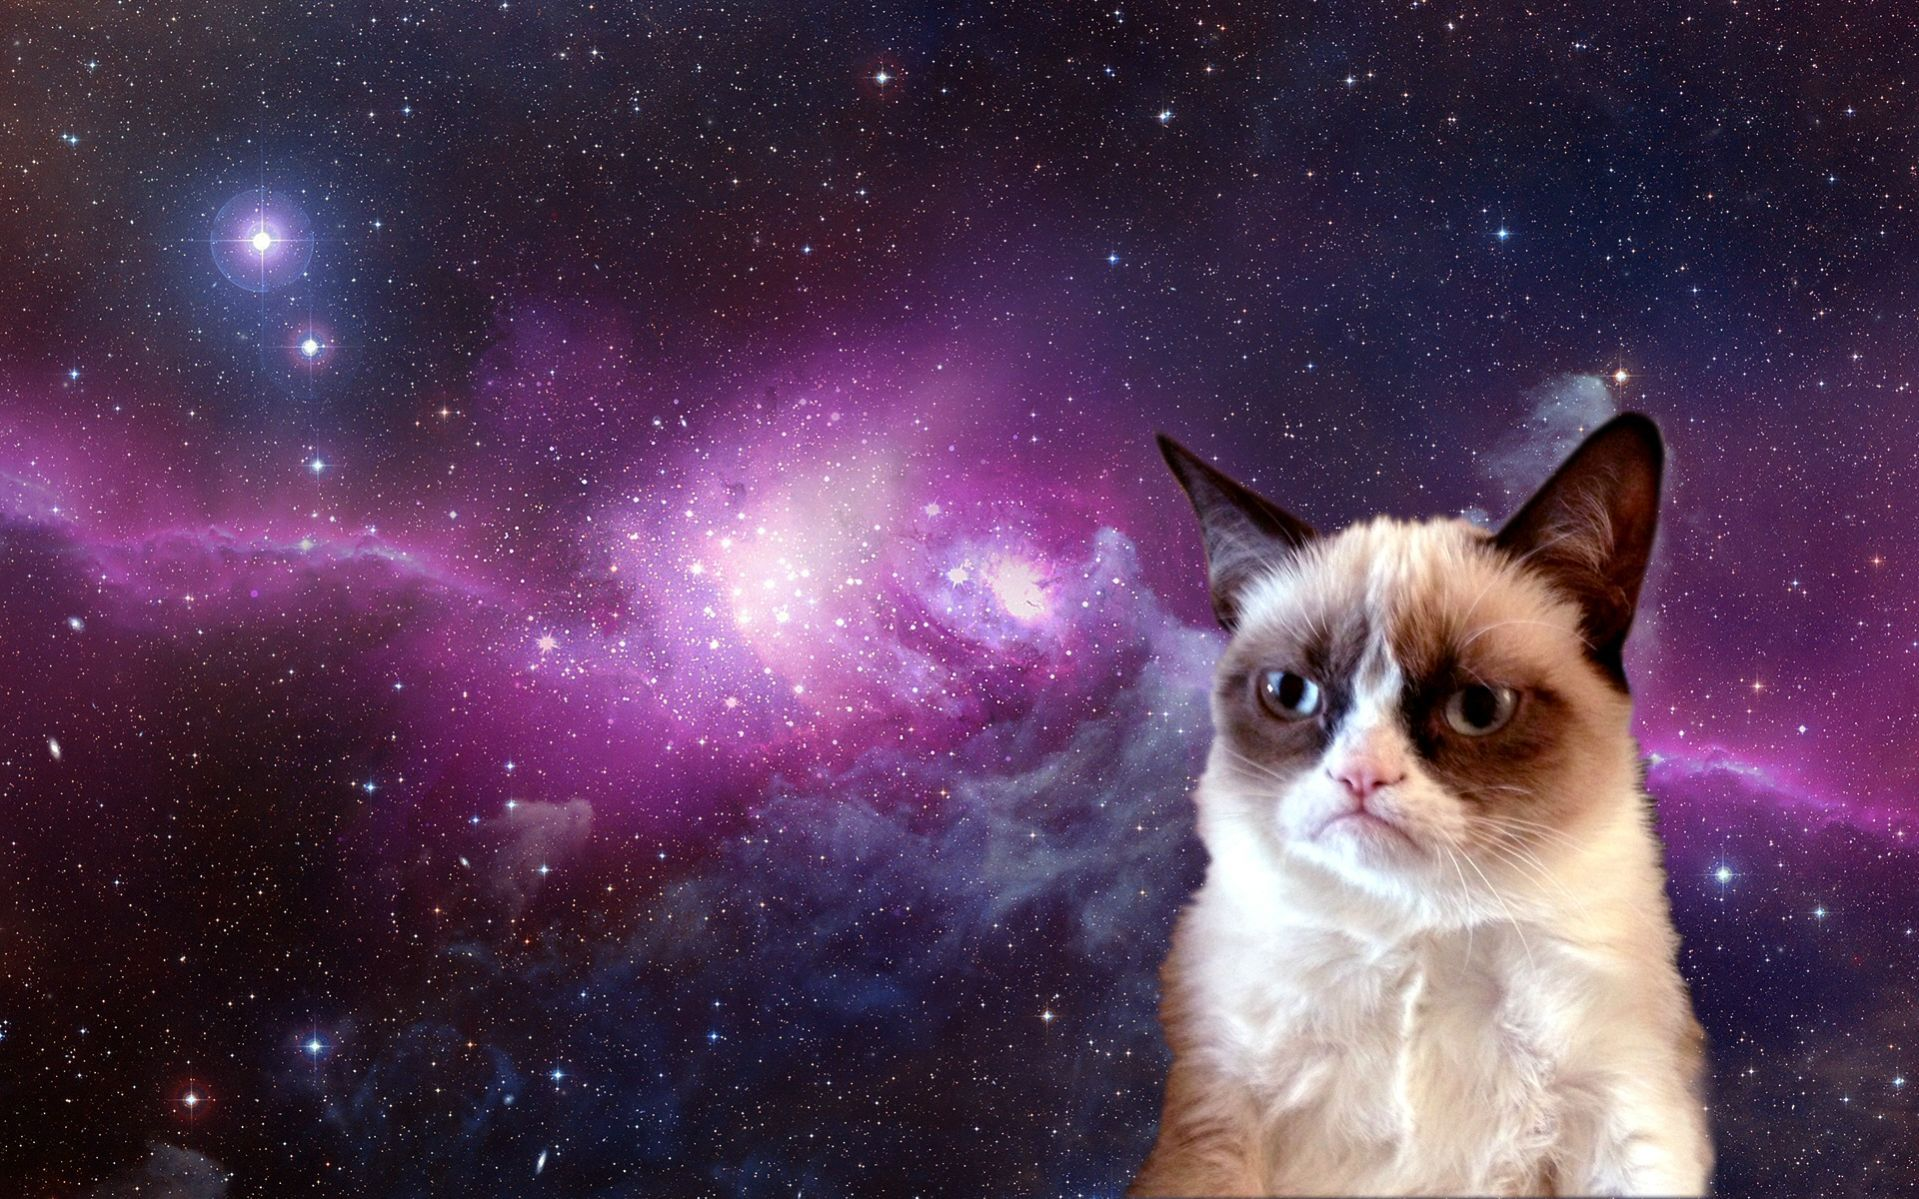 Grumpy Cat In Space 1920x1200 Junk Drawer Grumpy Cat Grumpy